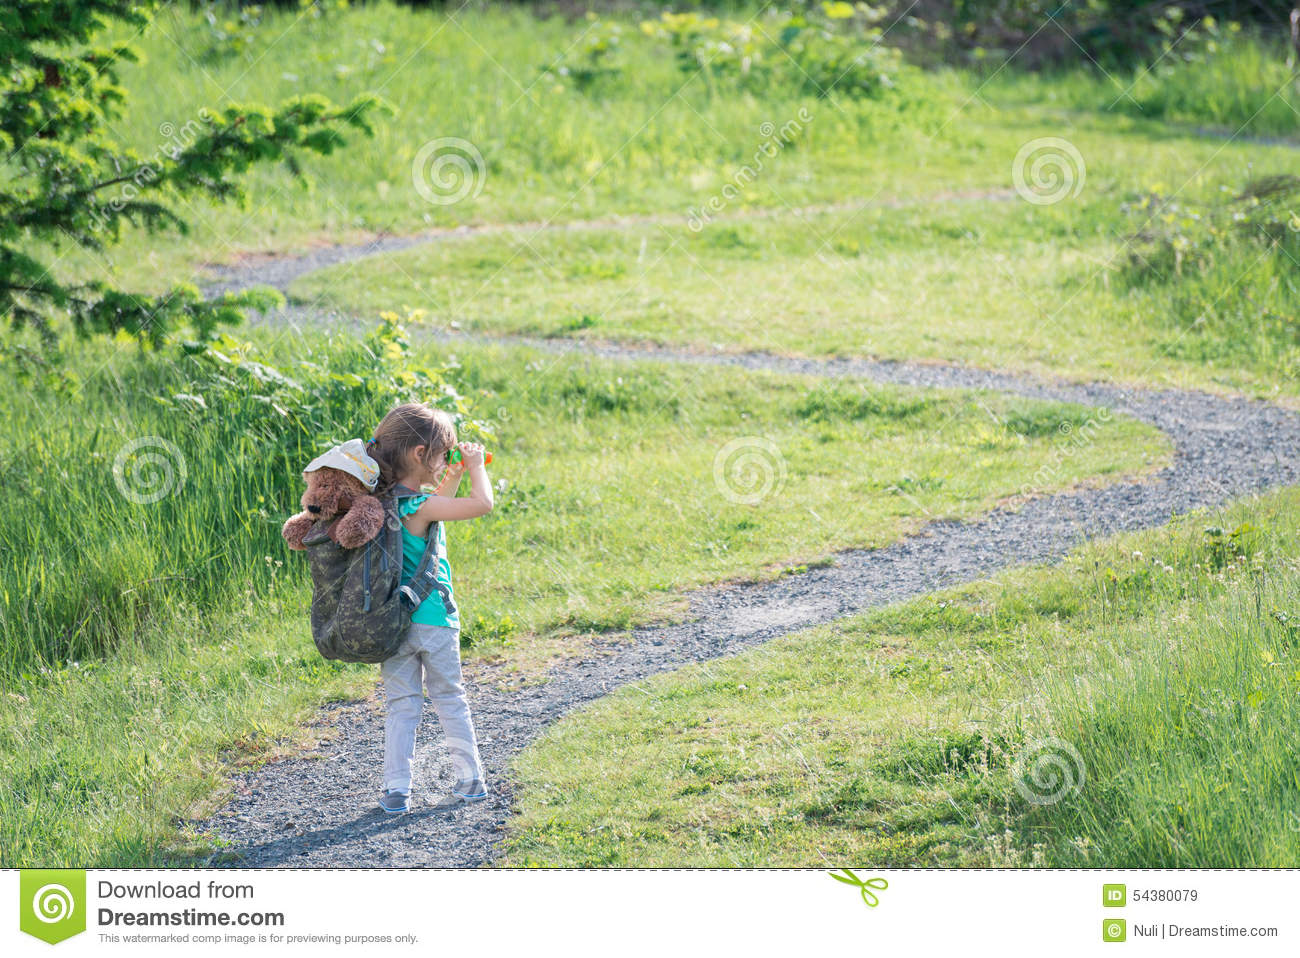 Girl With Teddy Bear In Backpack Looking At The Trail Ahead Stock